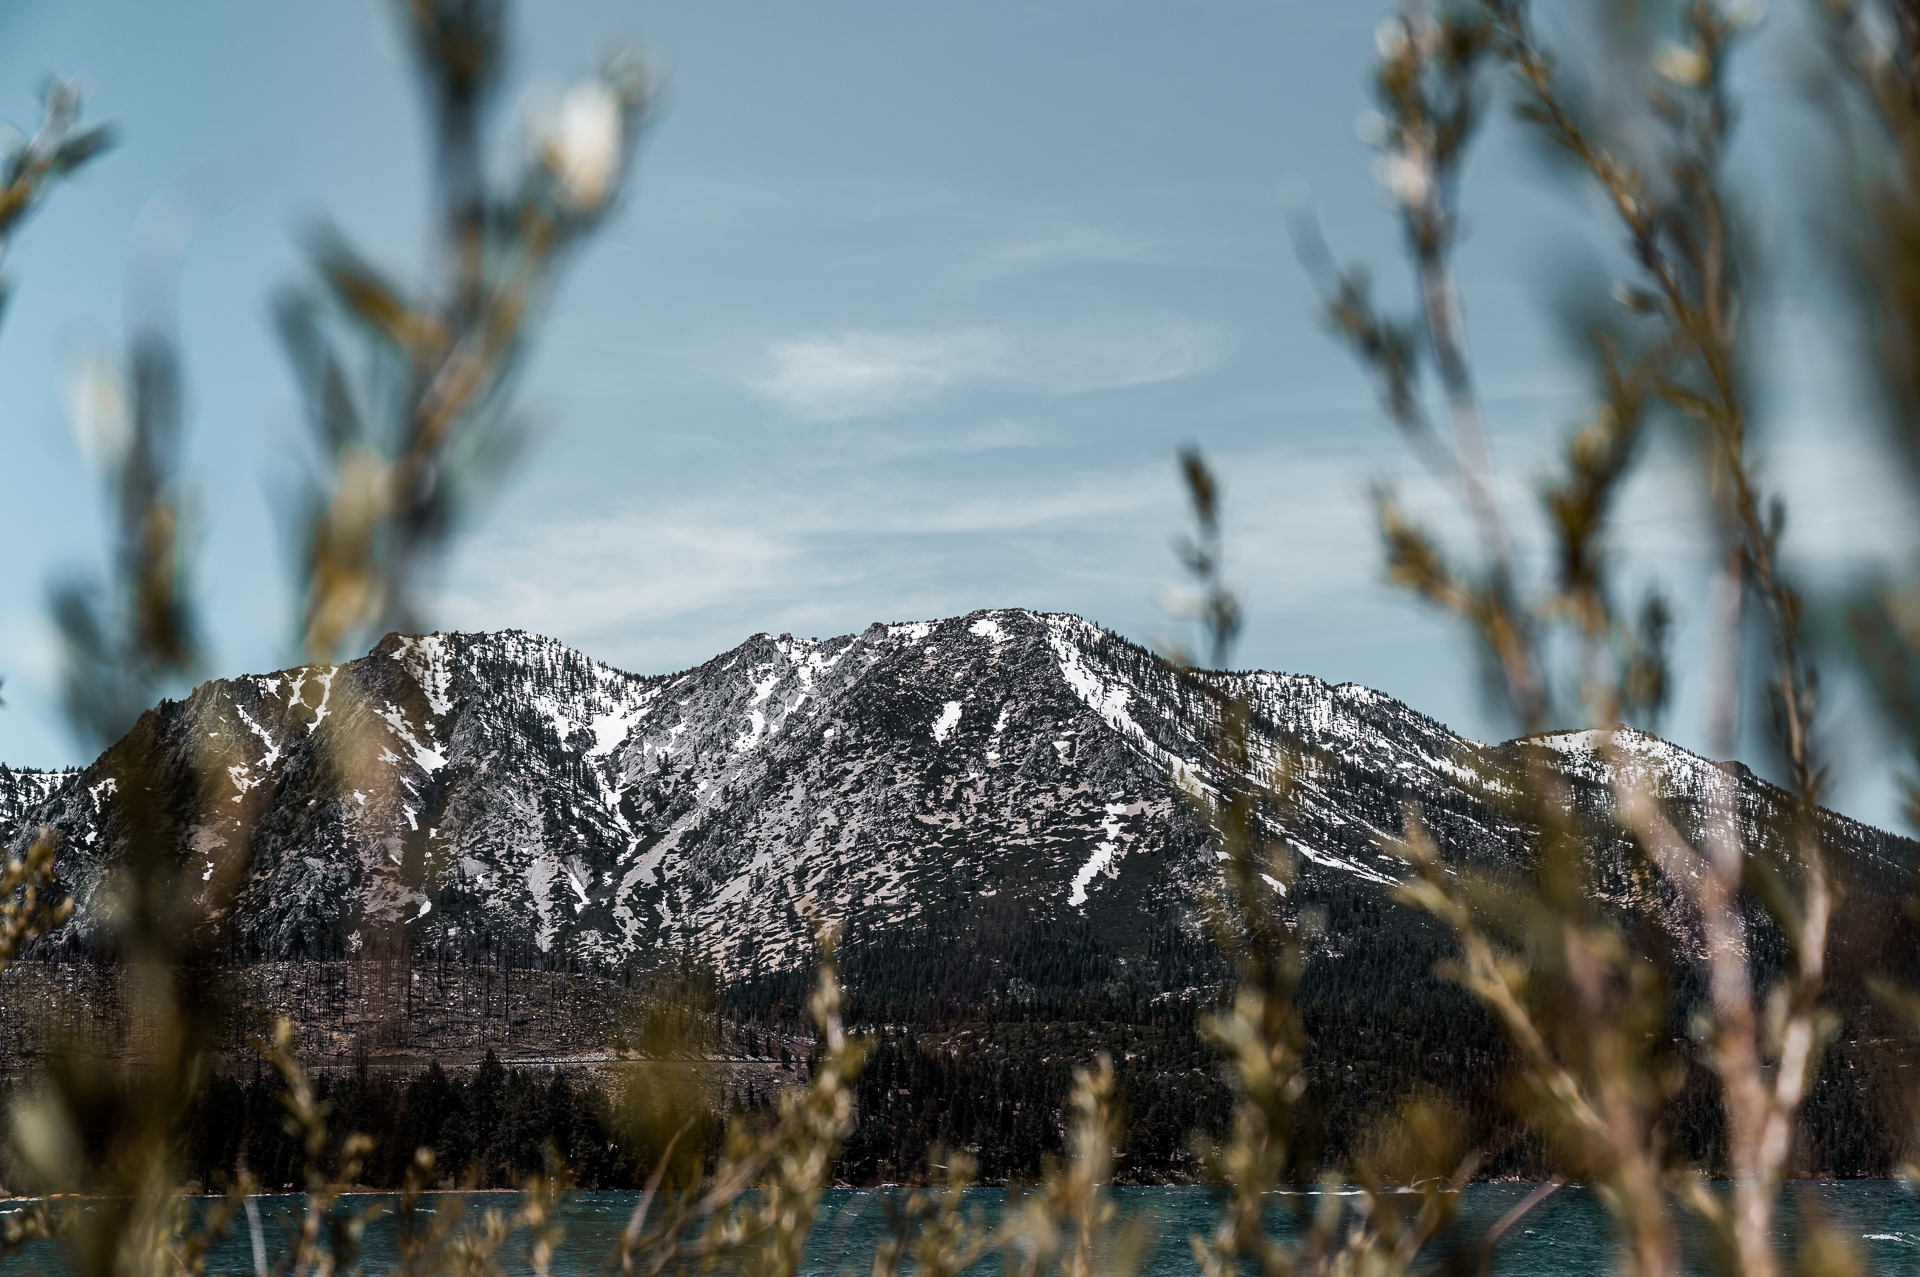 View of Mountains from South Lake Tahoe